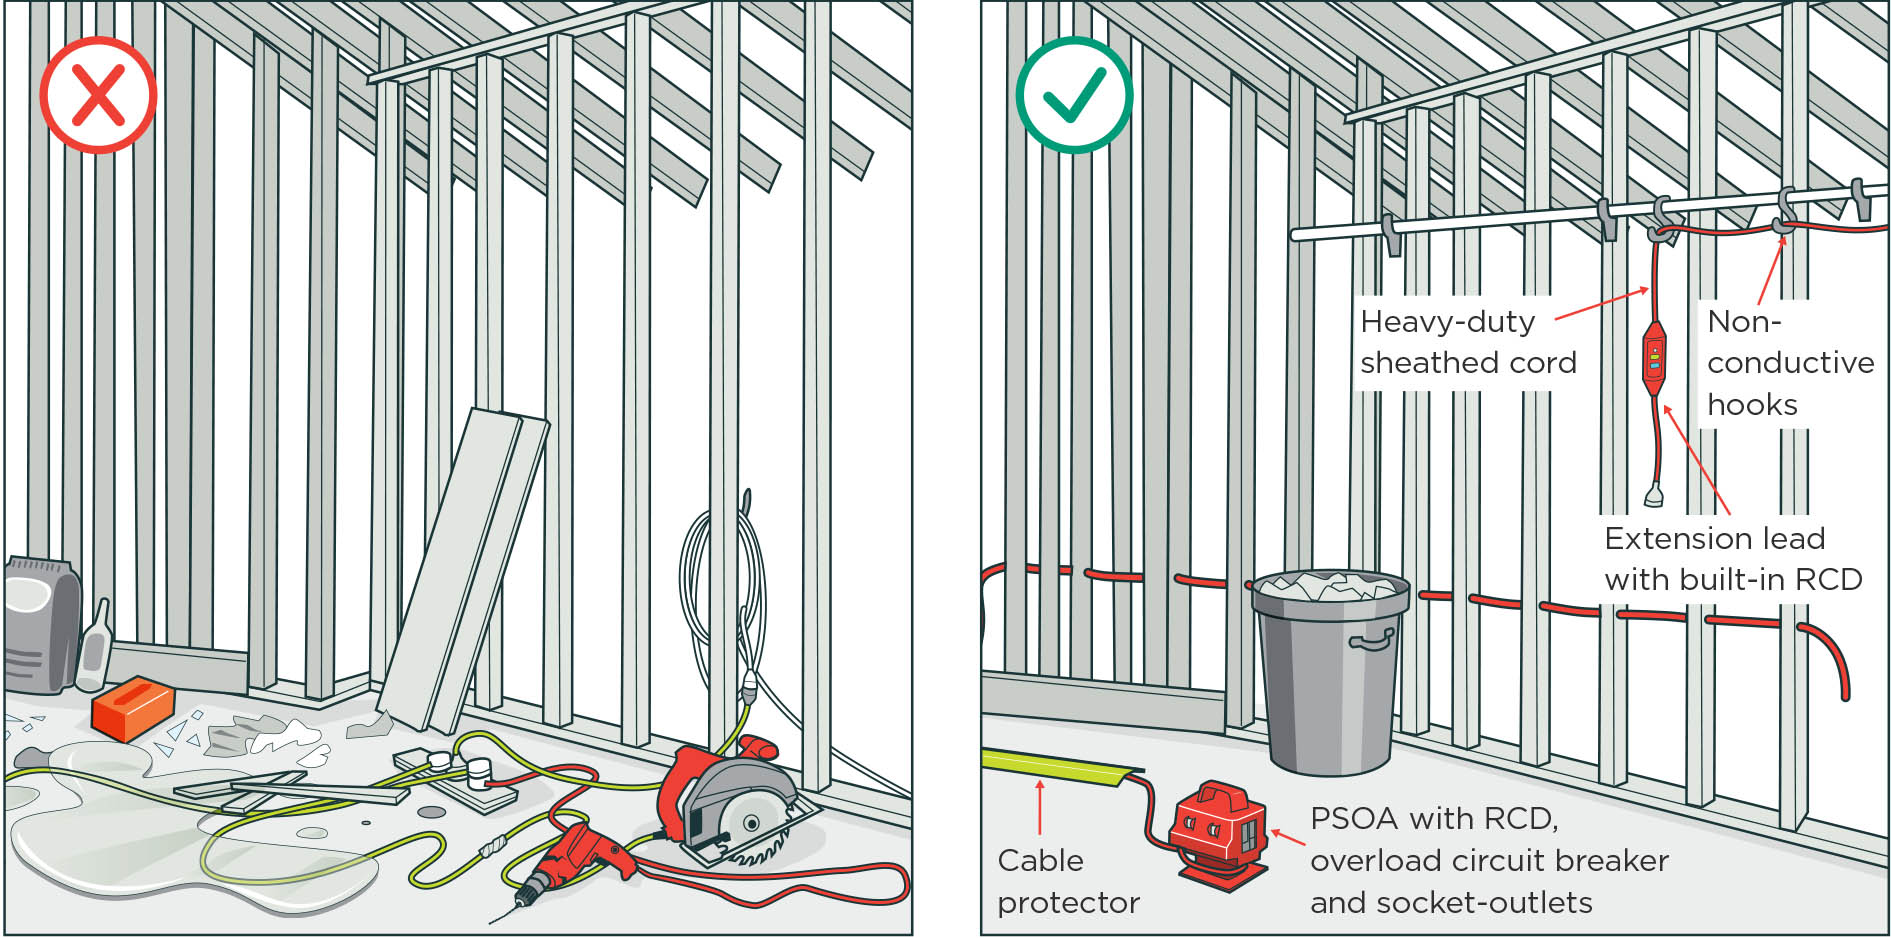 Electrical Safety On Small Construction Sites Worksafe Light Fitting Wiring Diagram Nz Image Two Being Compared One Has Cords Across The Floor And